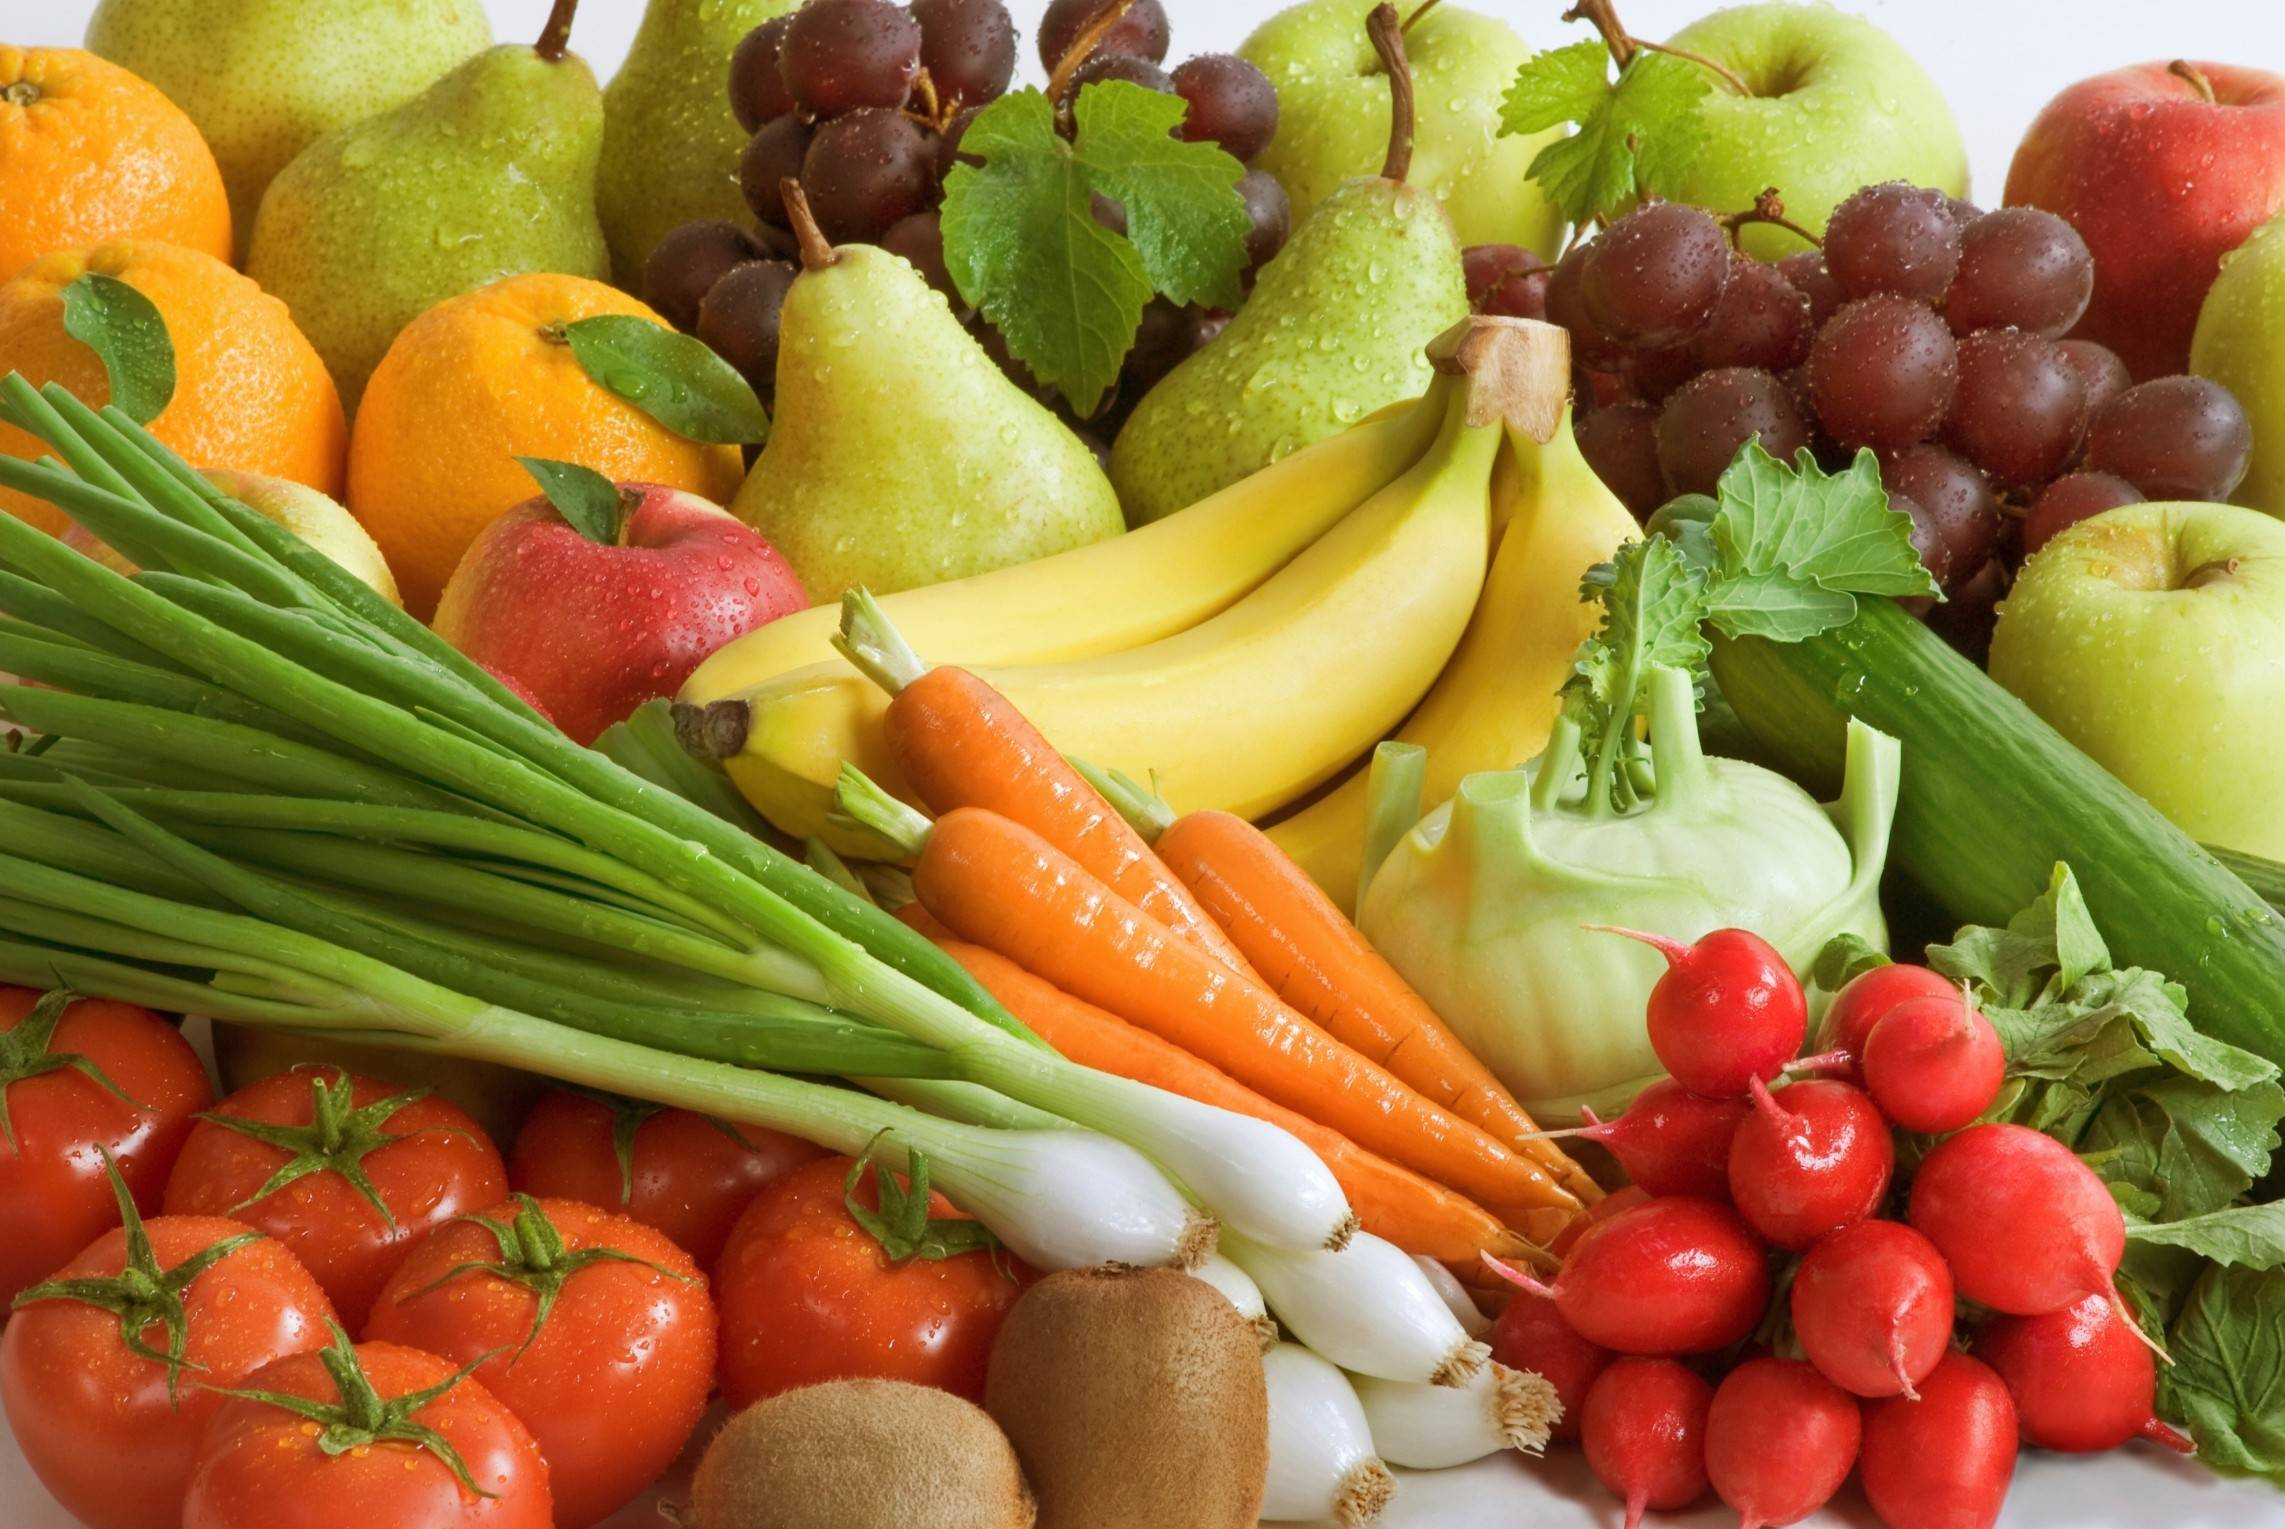 A new study suggests people who eat up to seven servings of fruit and vegetables a day can cut their risk of death by 42 percent.